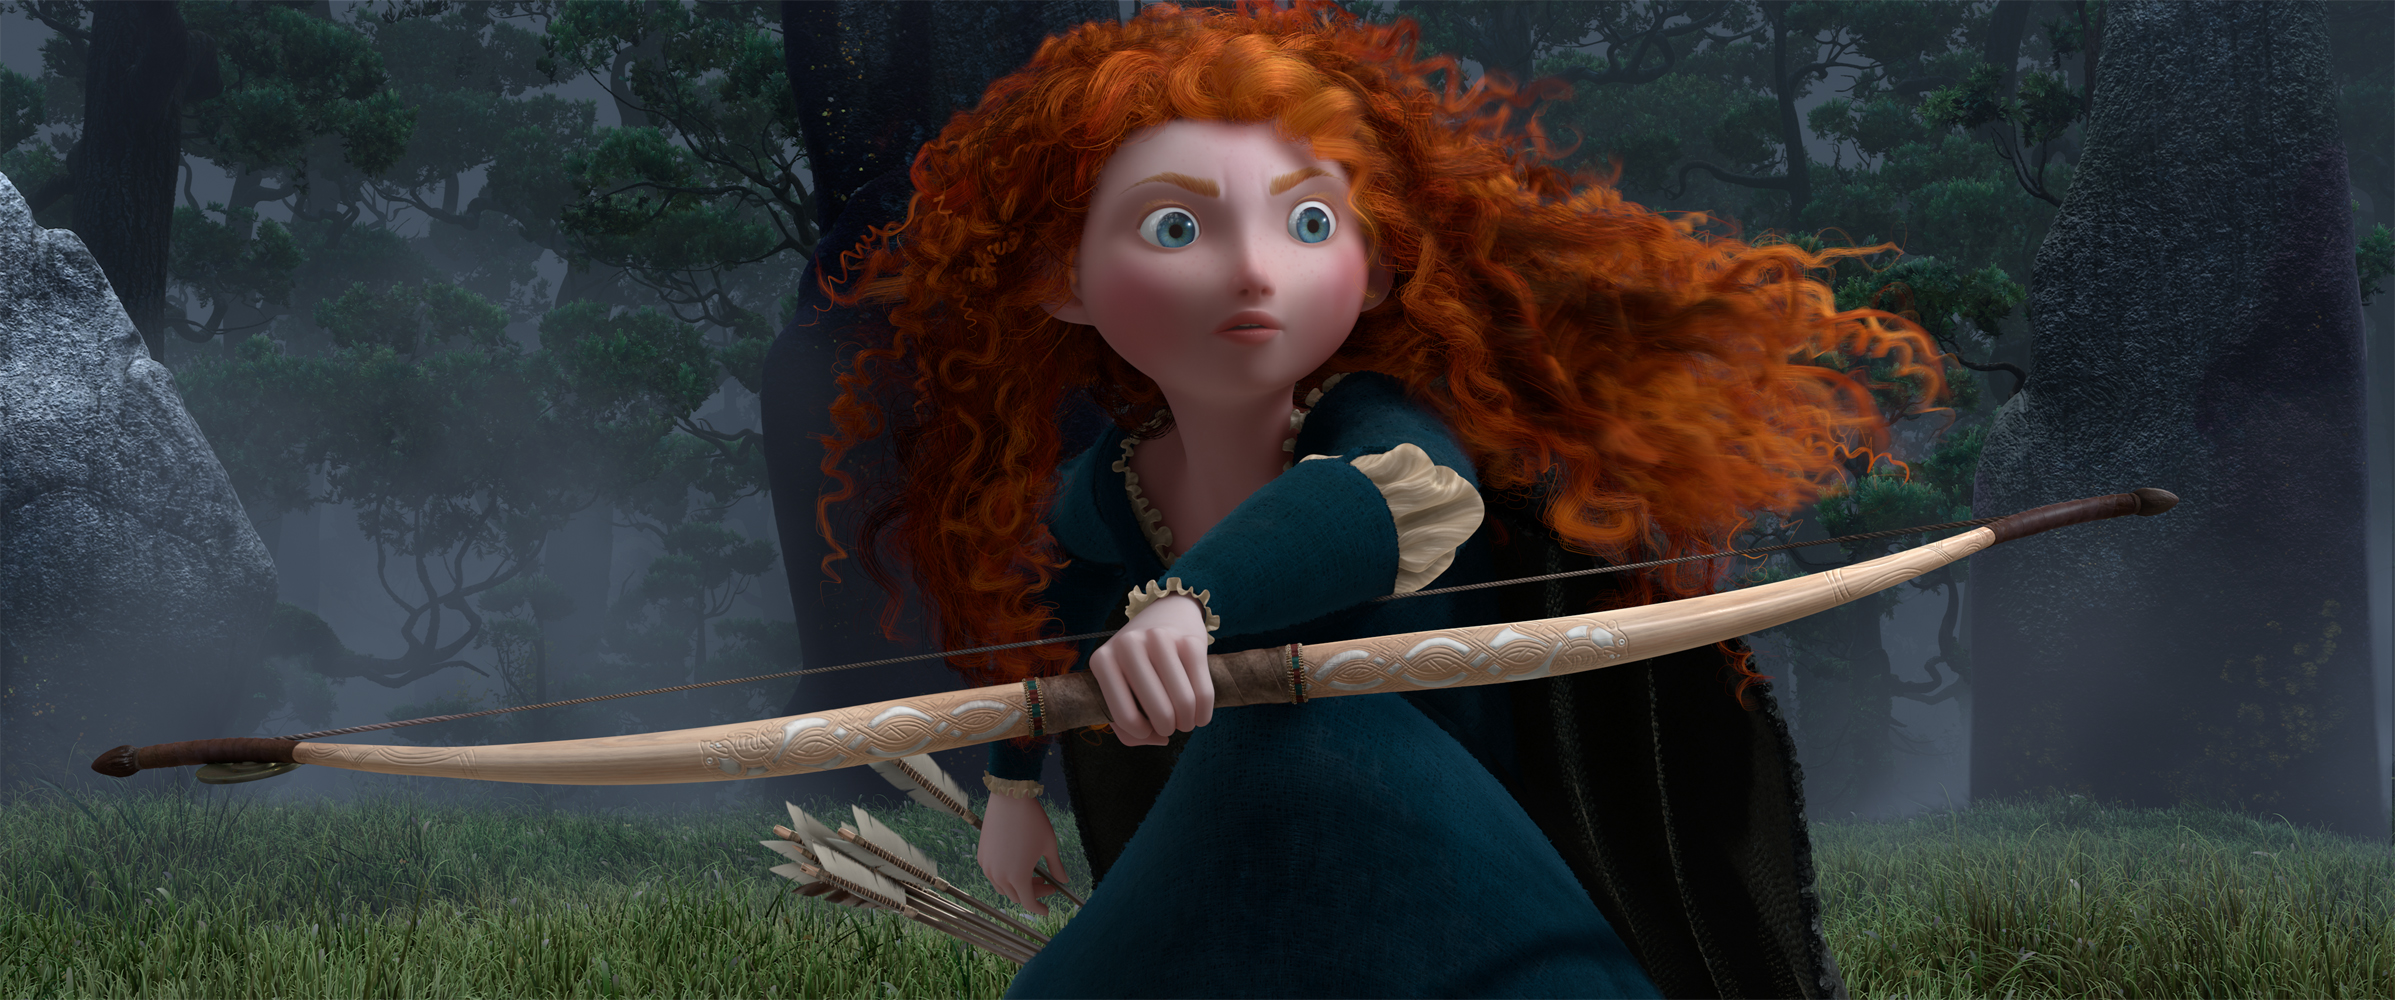 Pixar Rewrote Its Animation System For First Time In 25 Years For 'Brave'